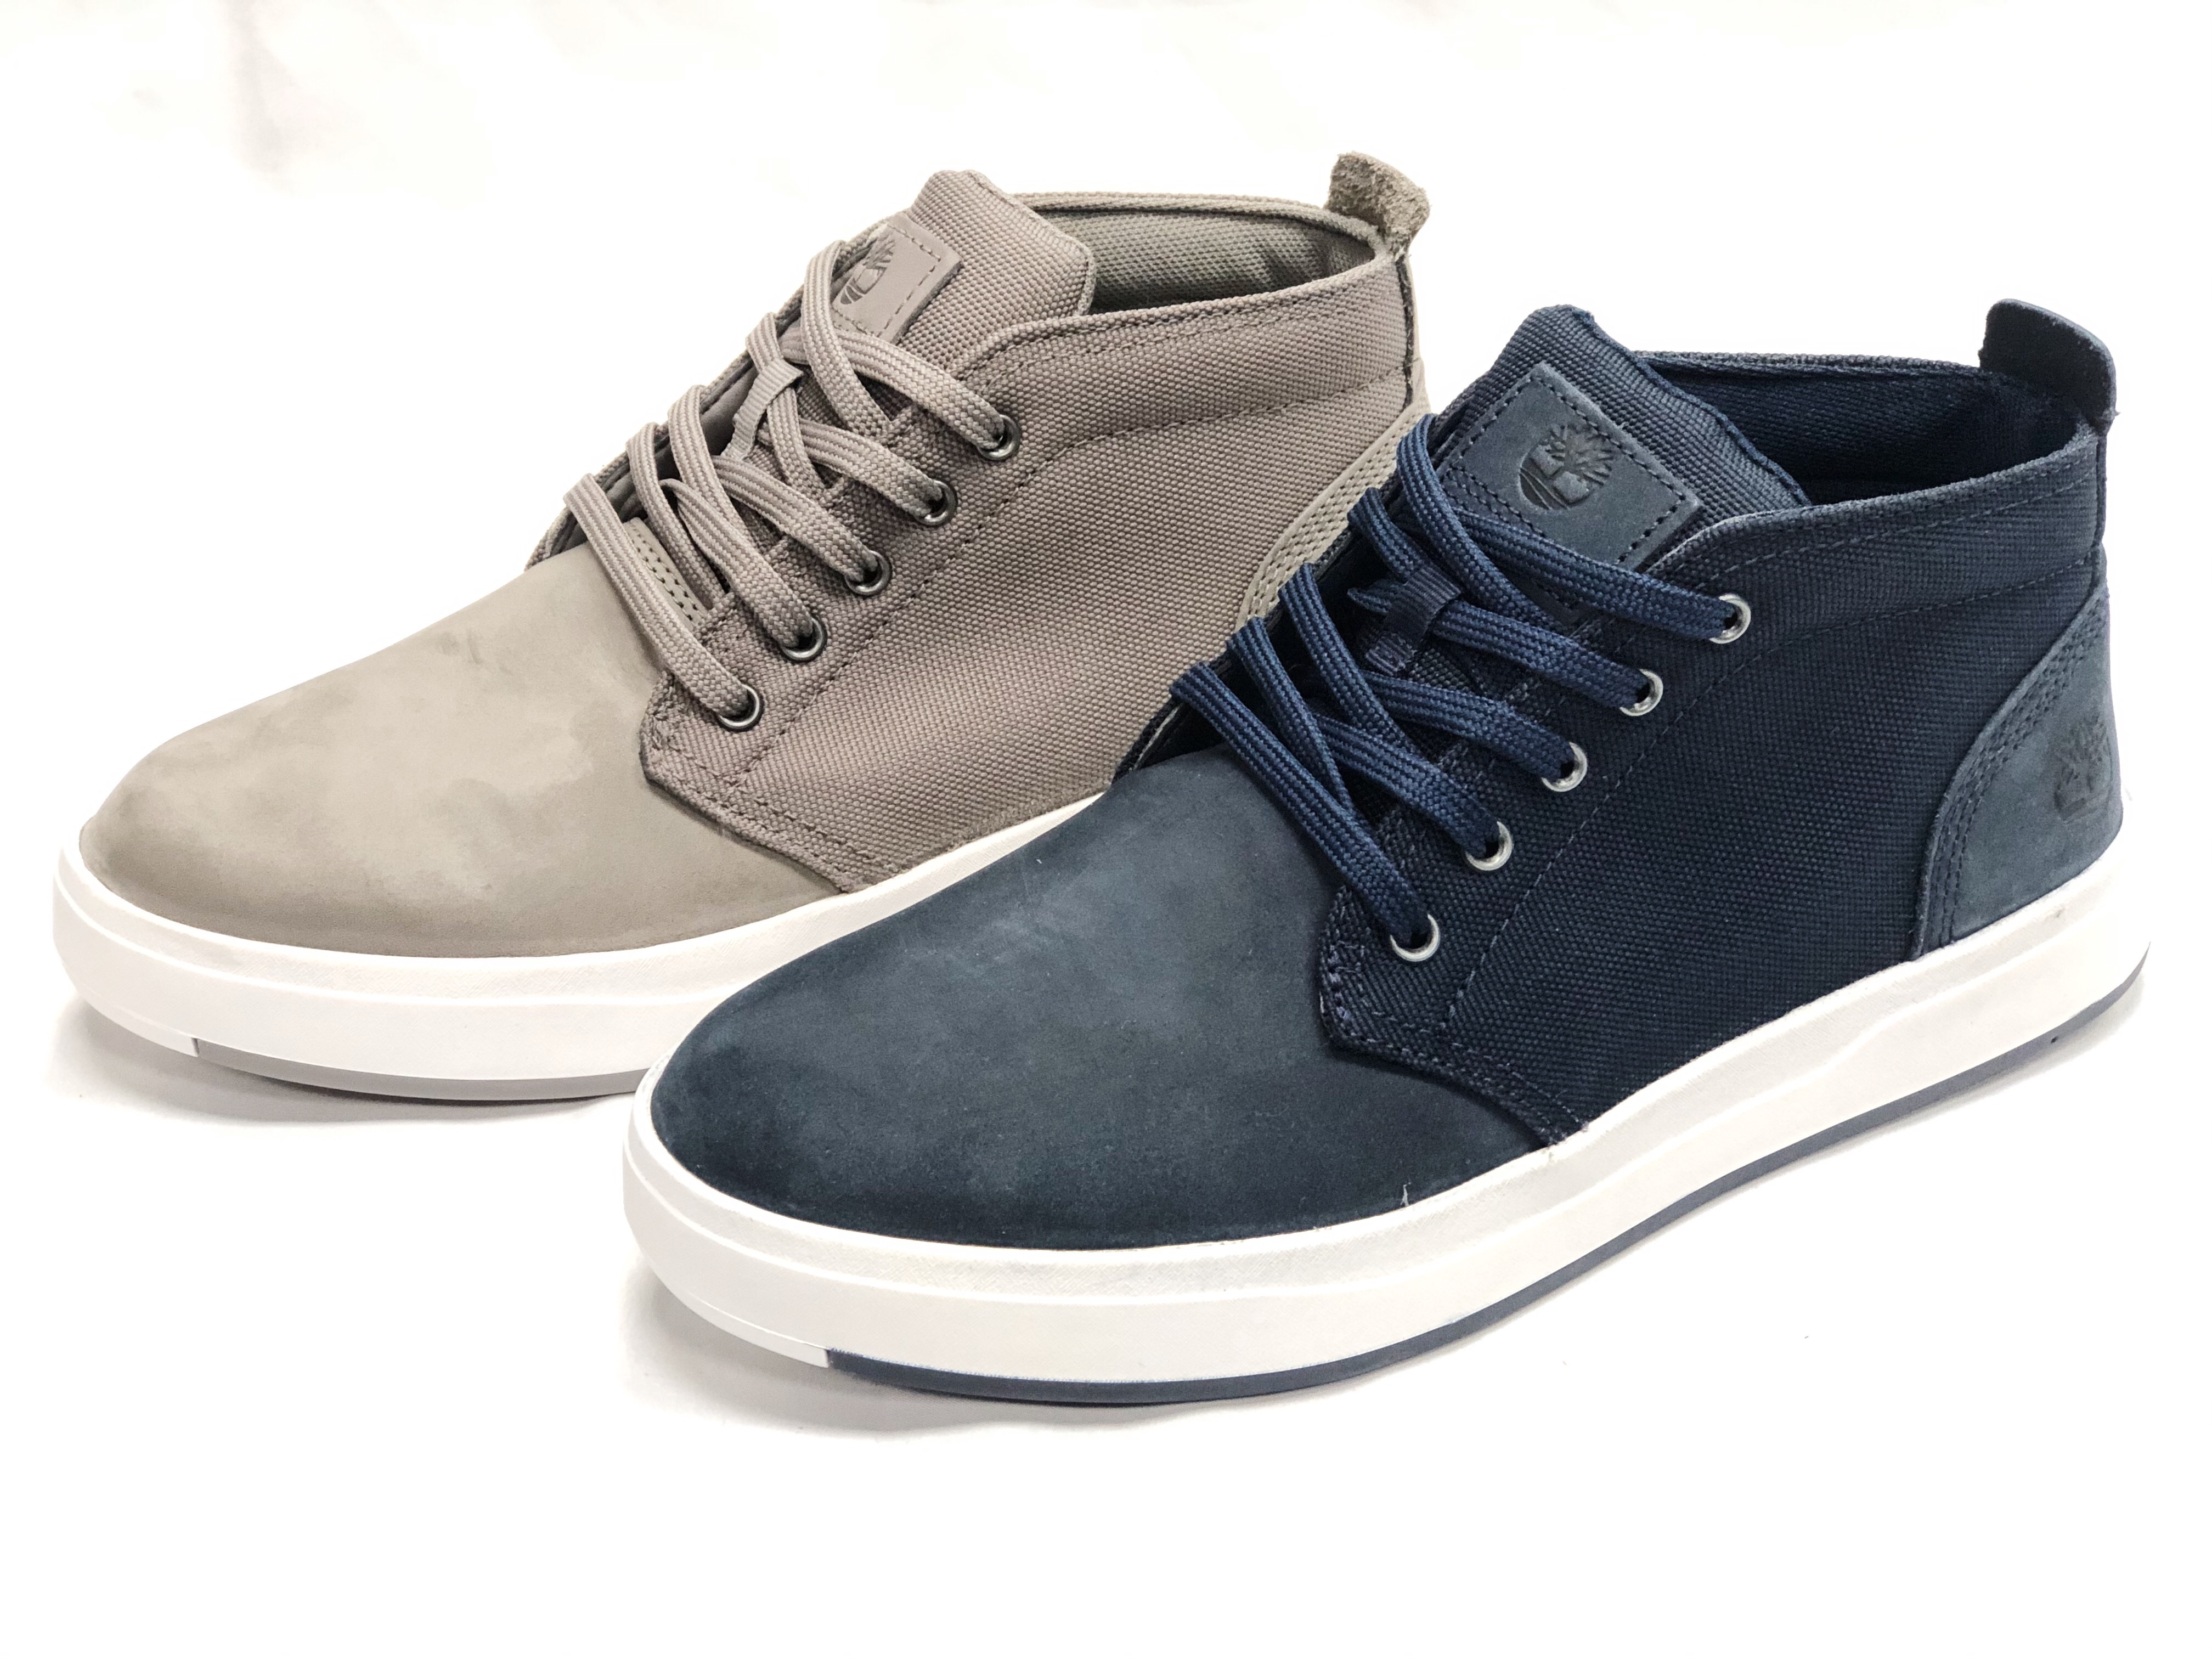 Timberland Davis Square Shoes